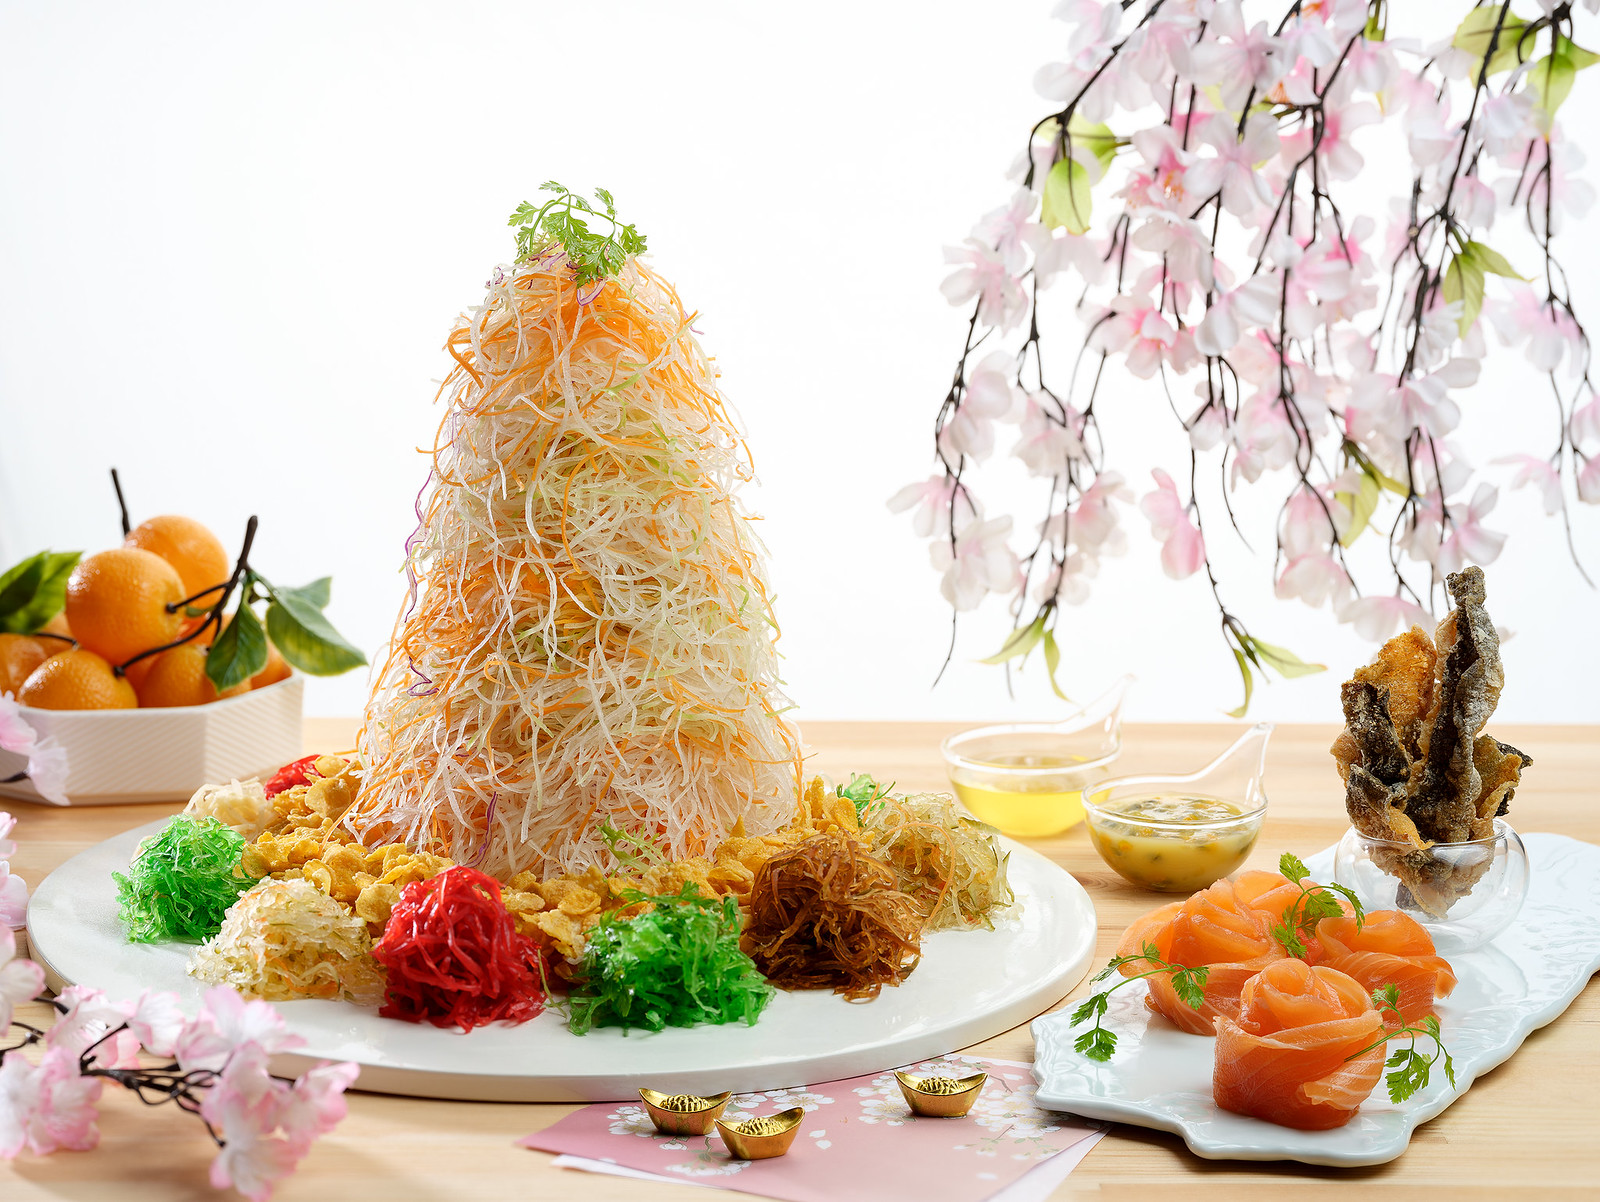 Xin Cuisine - Salmon Yusheng with Crispy Fish Skin and Passion Yoghurt Dressing